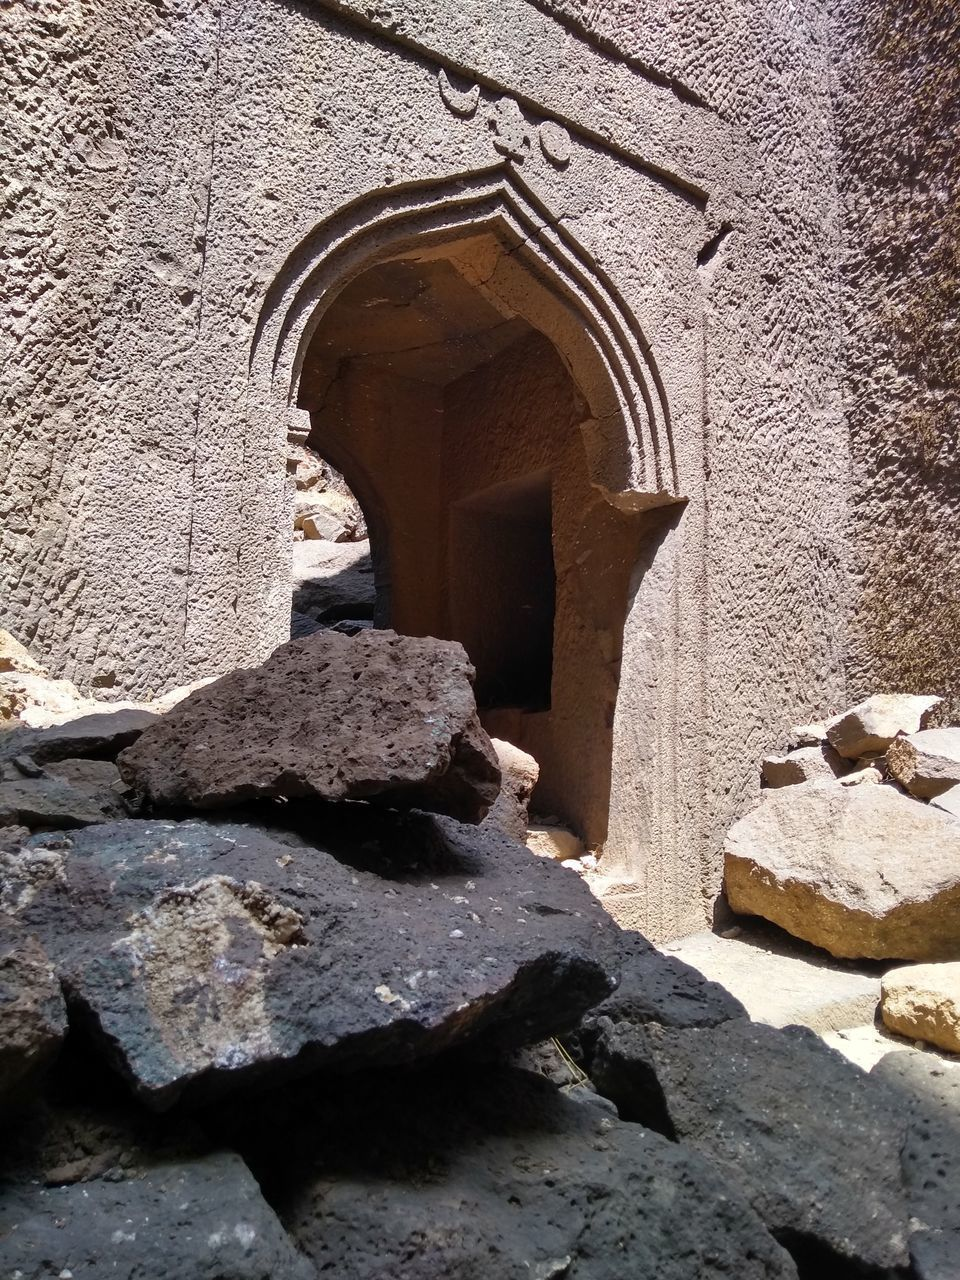 architecture, built structure, arch, the past, history, building exterior, day, building, no people, solid, old, sunlight, wall, nature, stone material, outdoors, low angle view, wall - building feature, stone wall, religion, ancient civilization